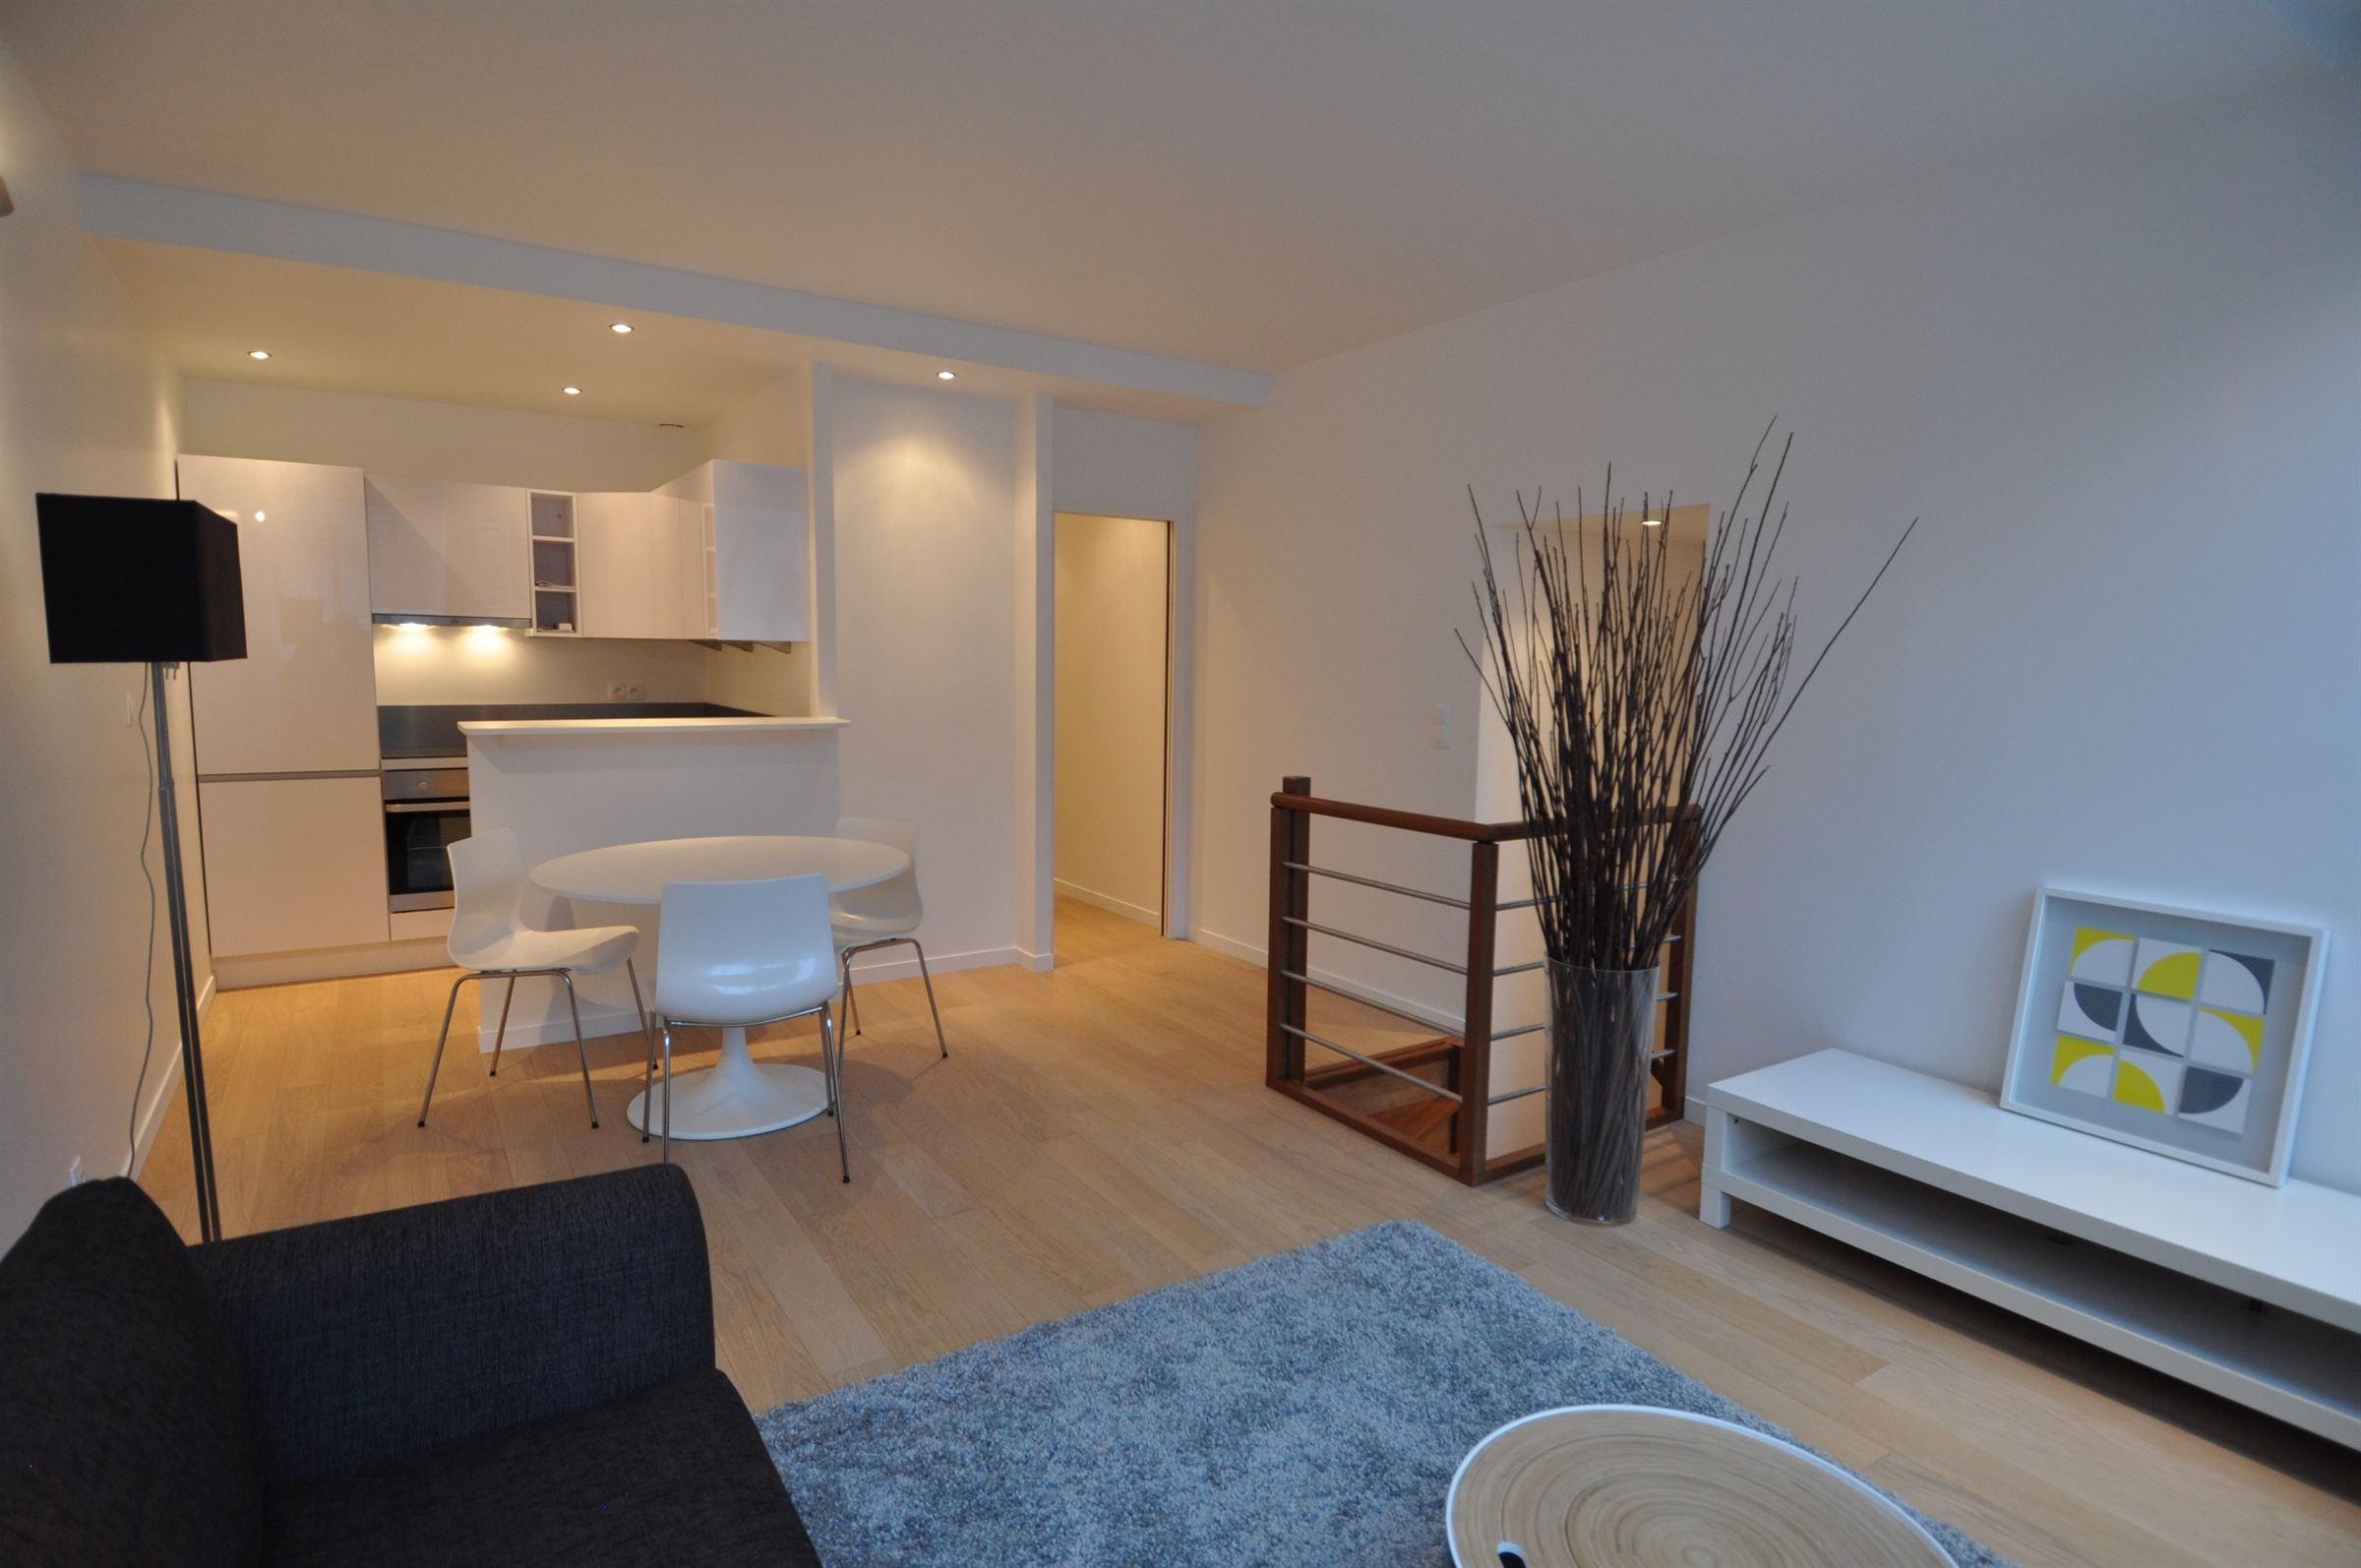 sales property at Center of Lille, Renovated Apartment 2 Bedrooms